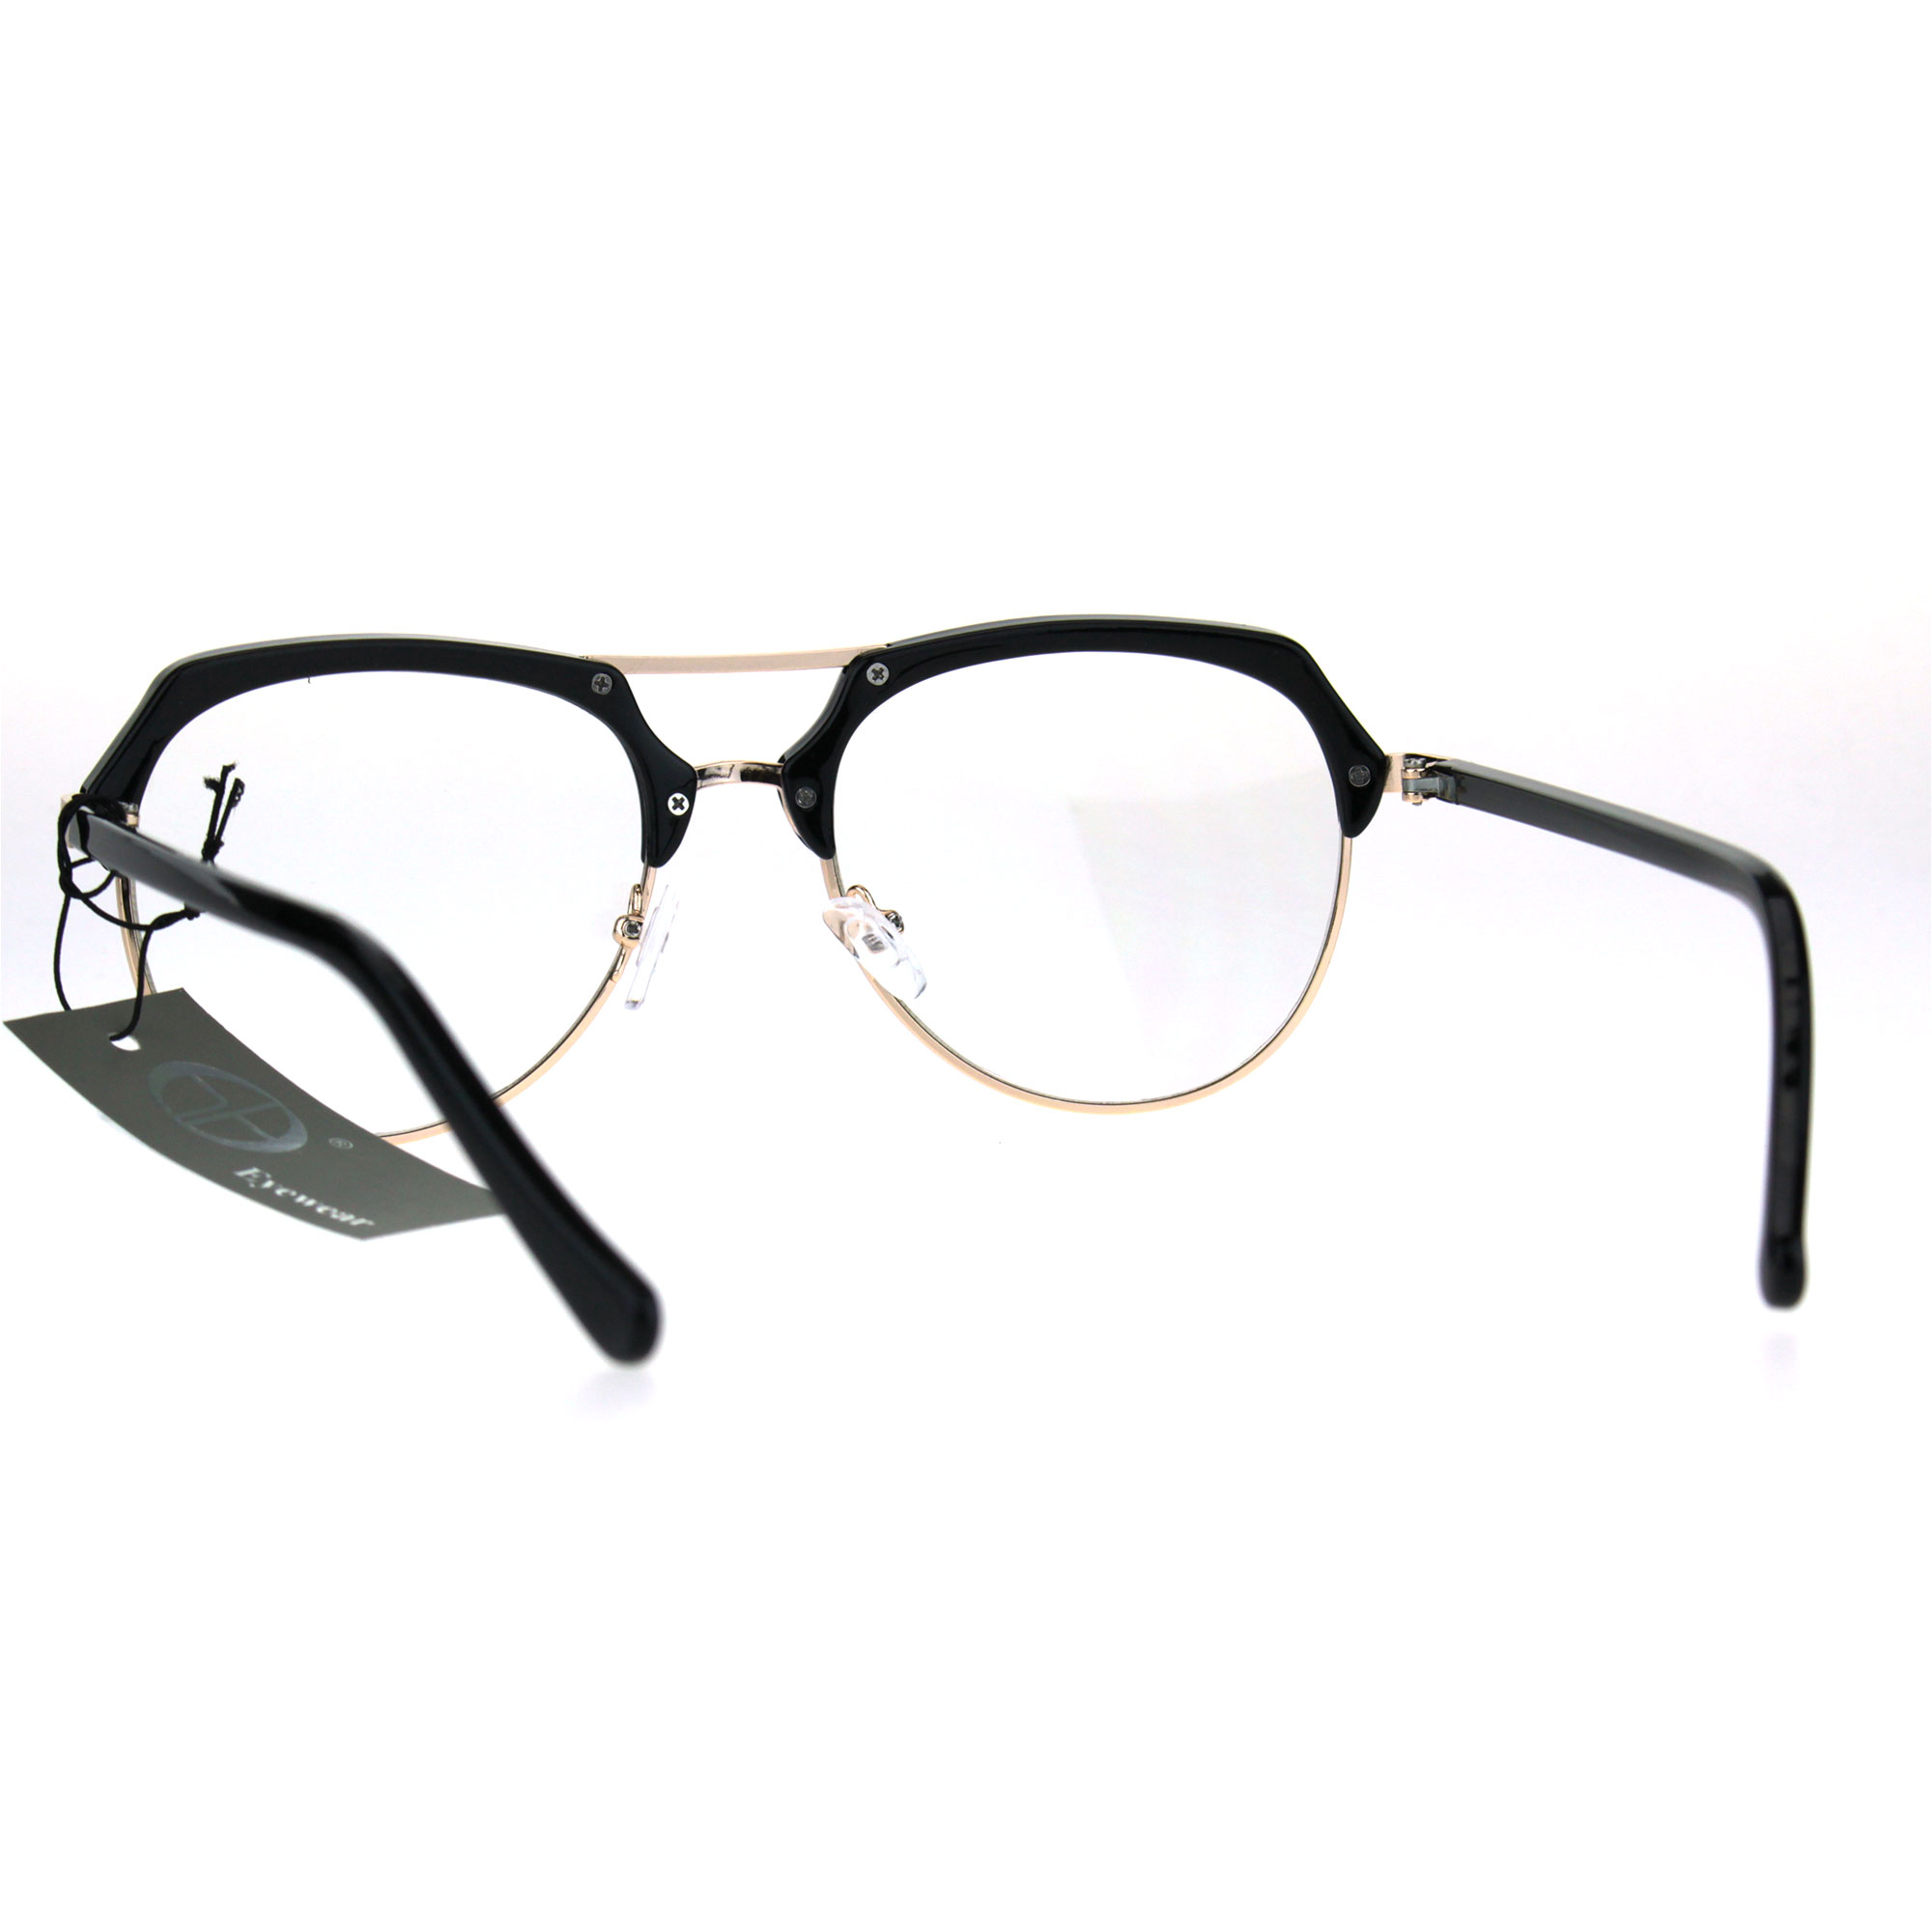 9203479e5c79b Retro Luxury Half Rim Aviator Designer Fashion Clear Lens Eye ...